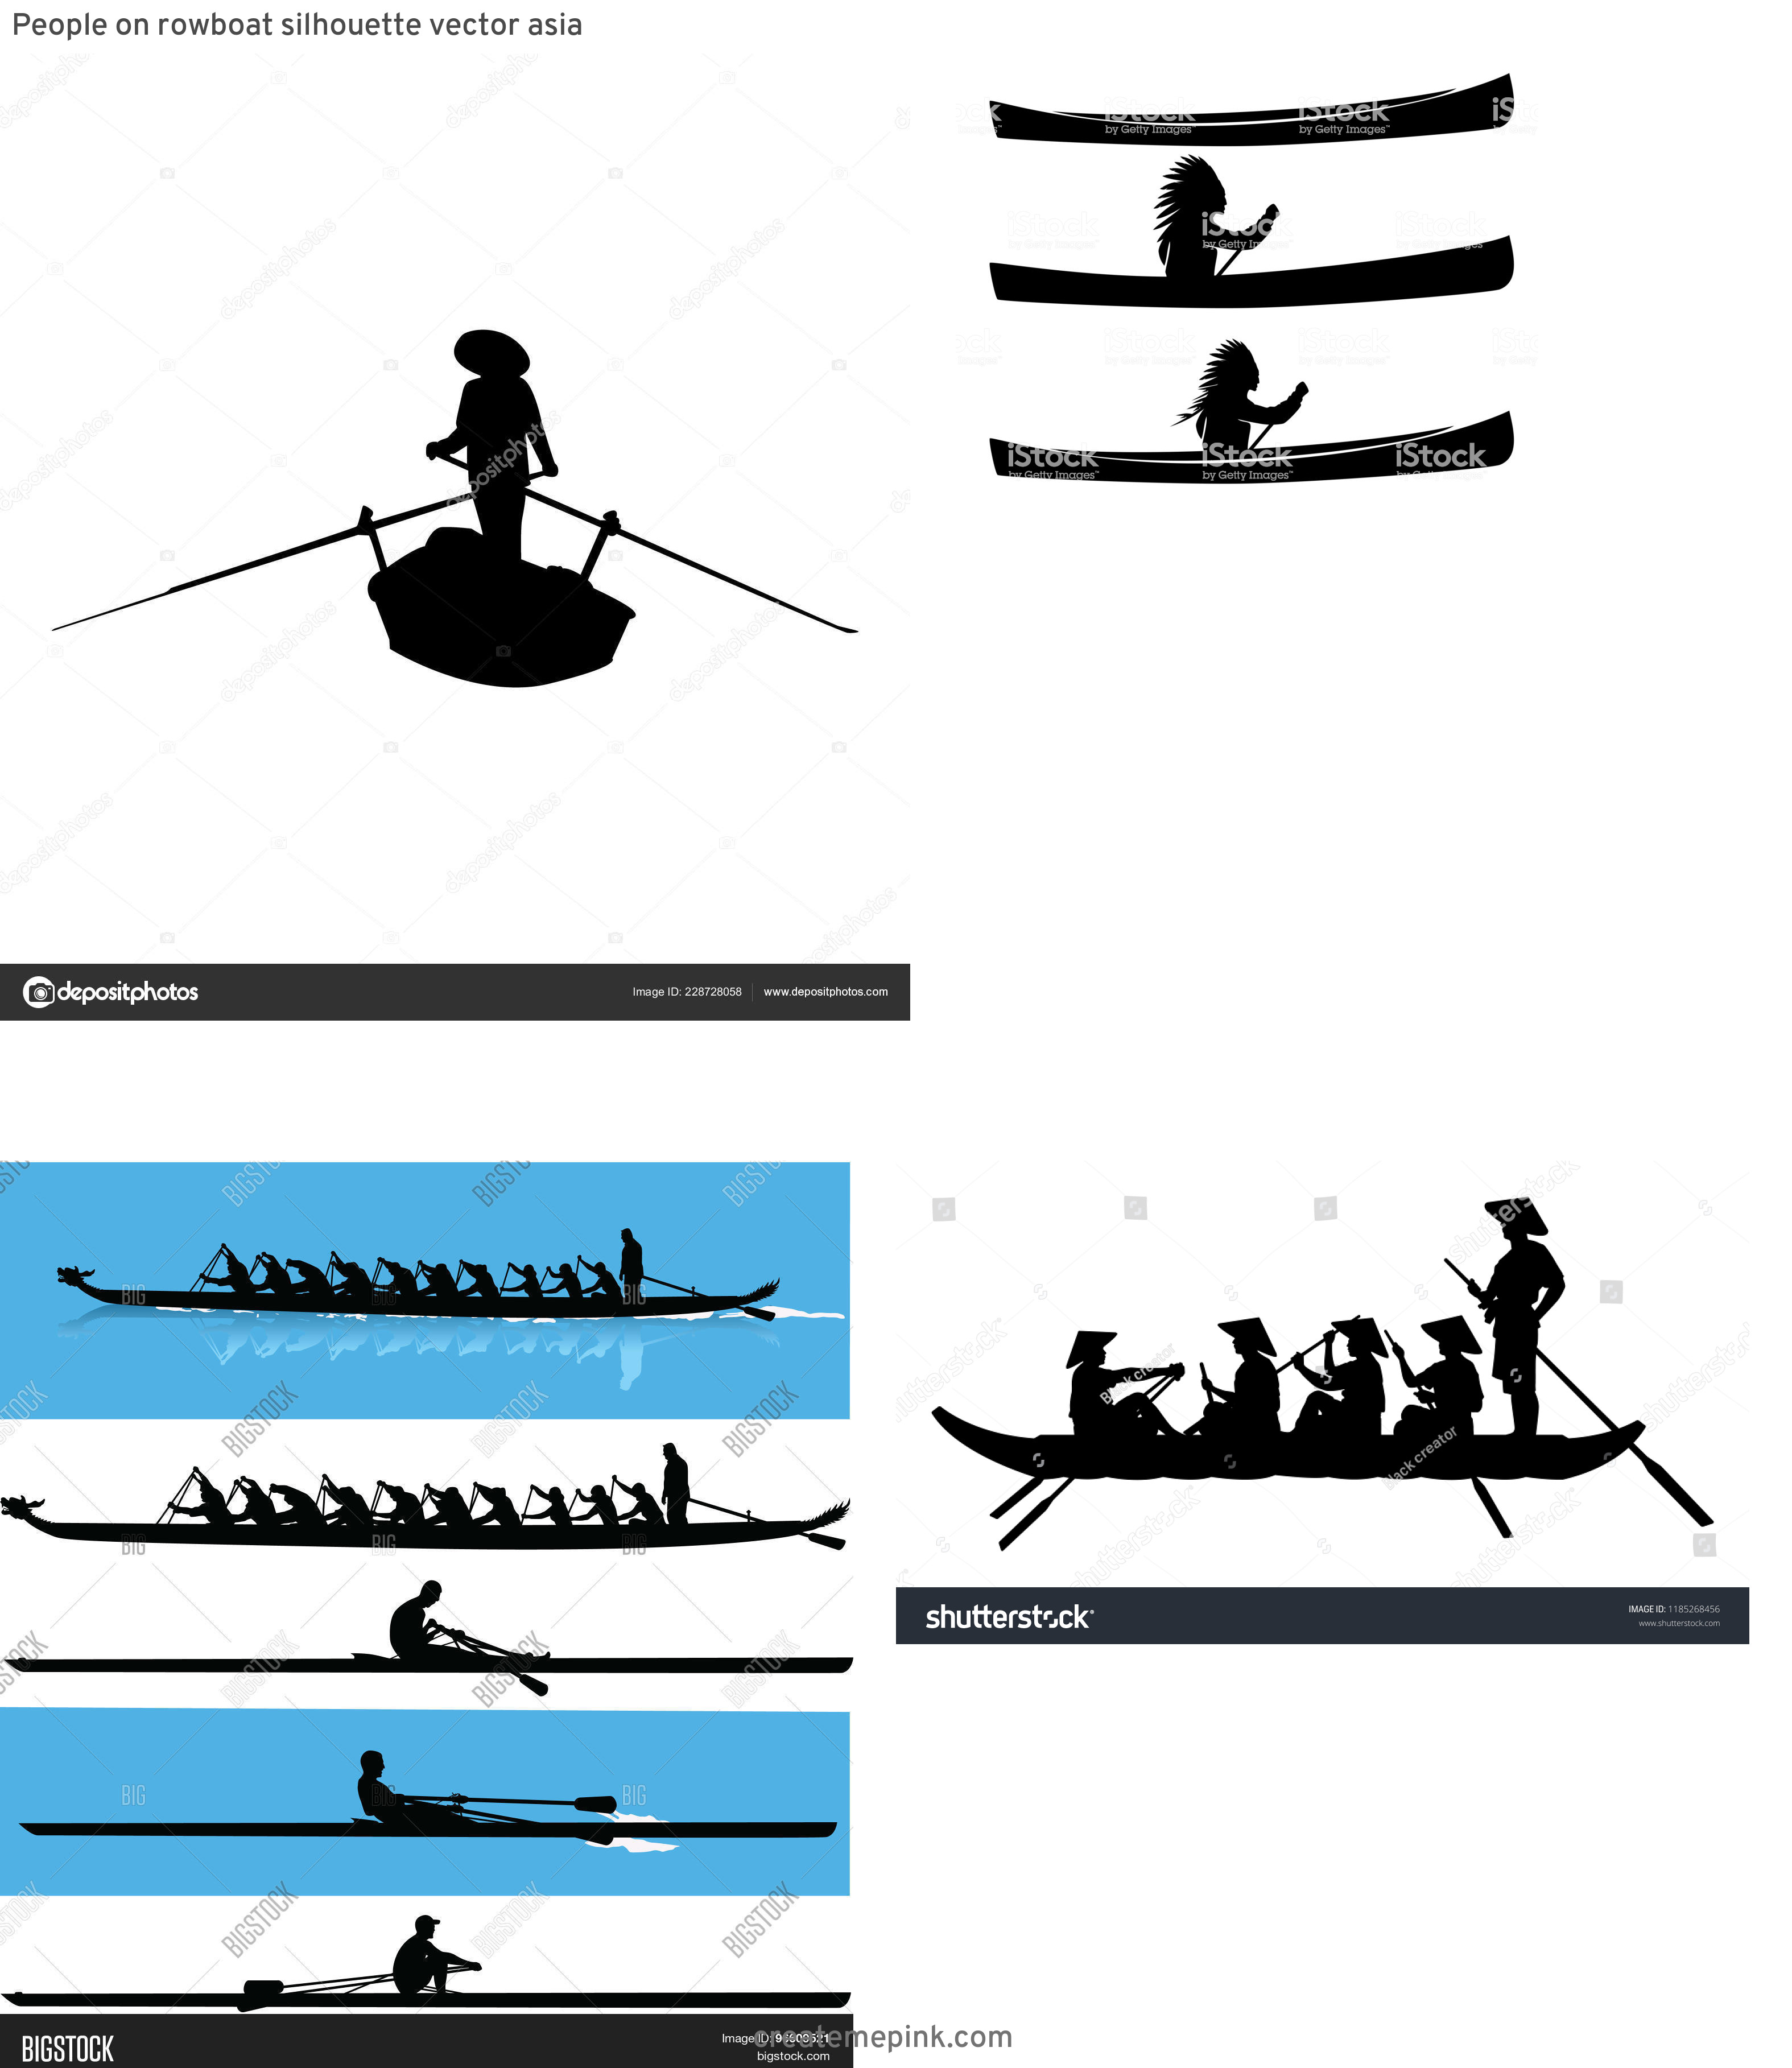 Row Boat Vector Sillohettes: People On Rowboat Silhouette Vector Asia